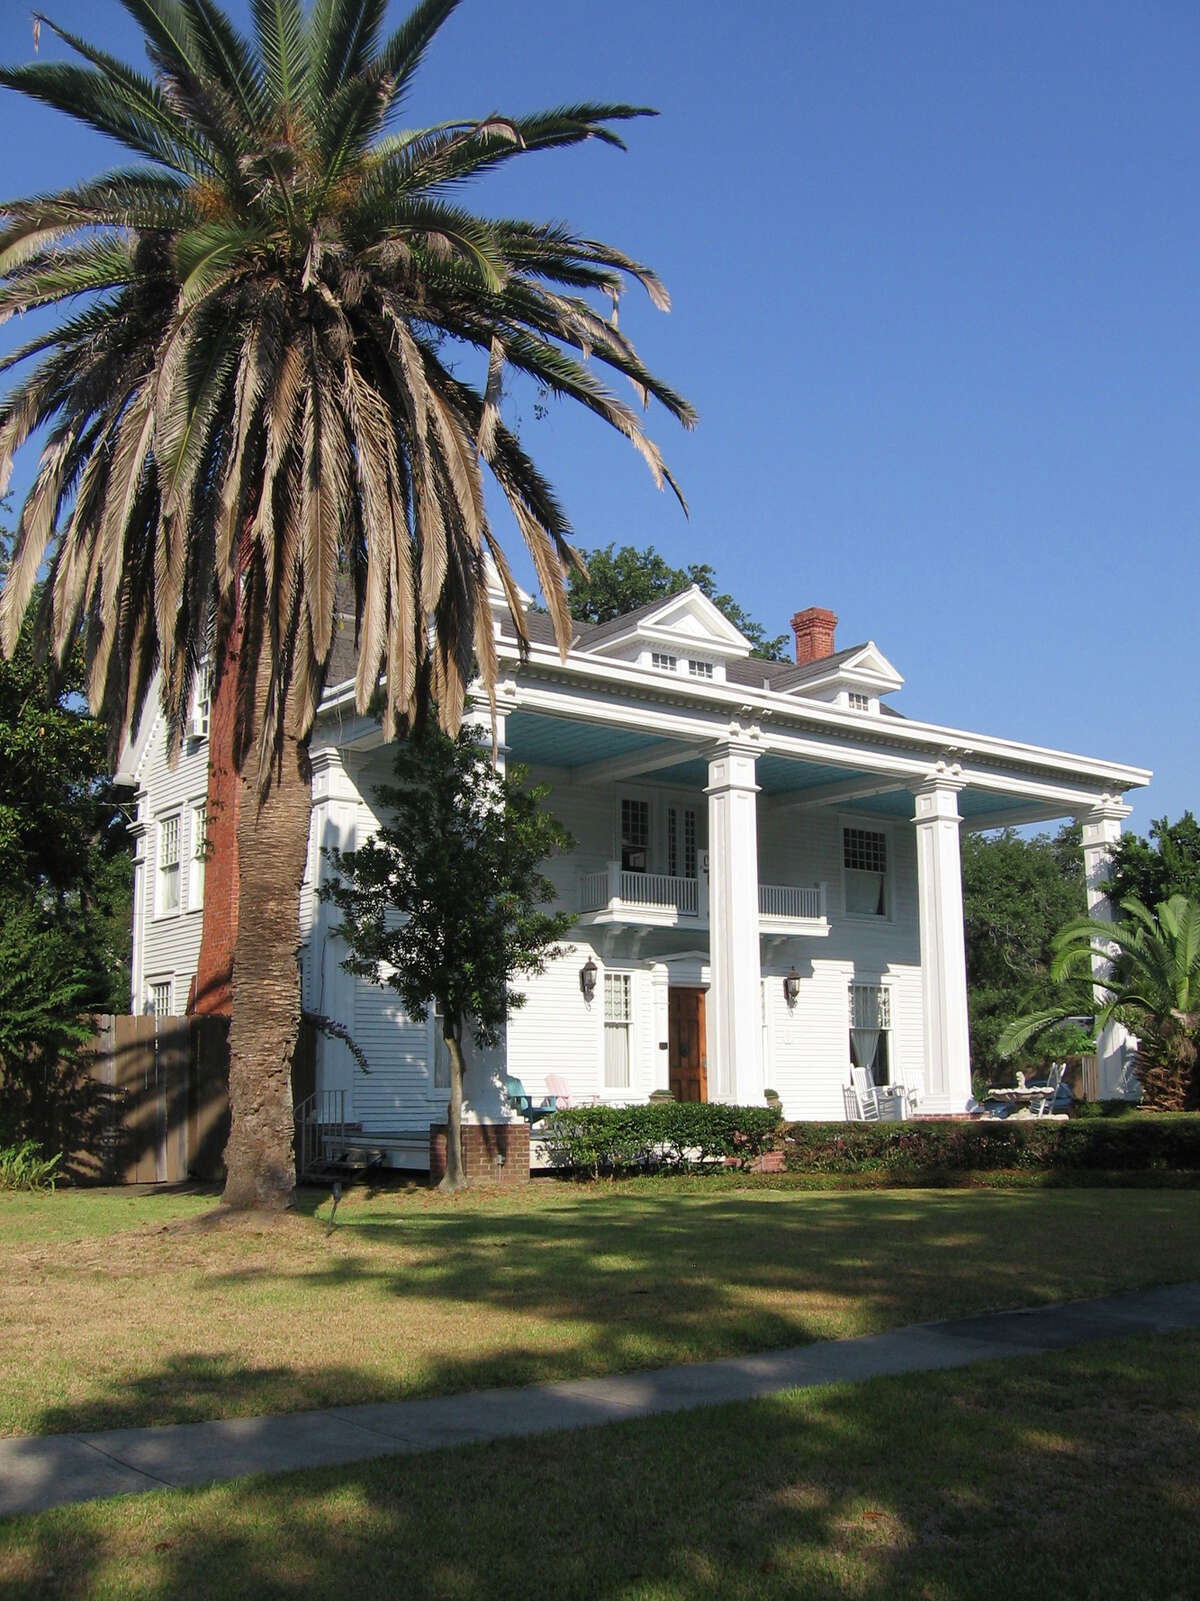 Historic houses are just some of the attractions for visitors to Lake Charles.